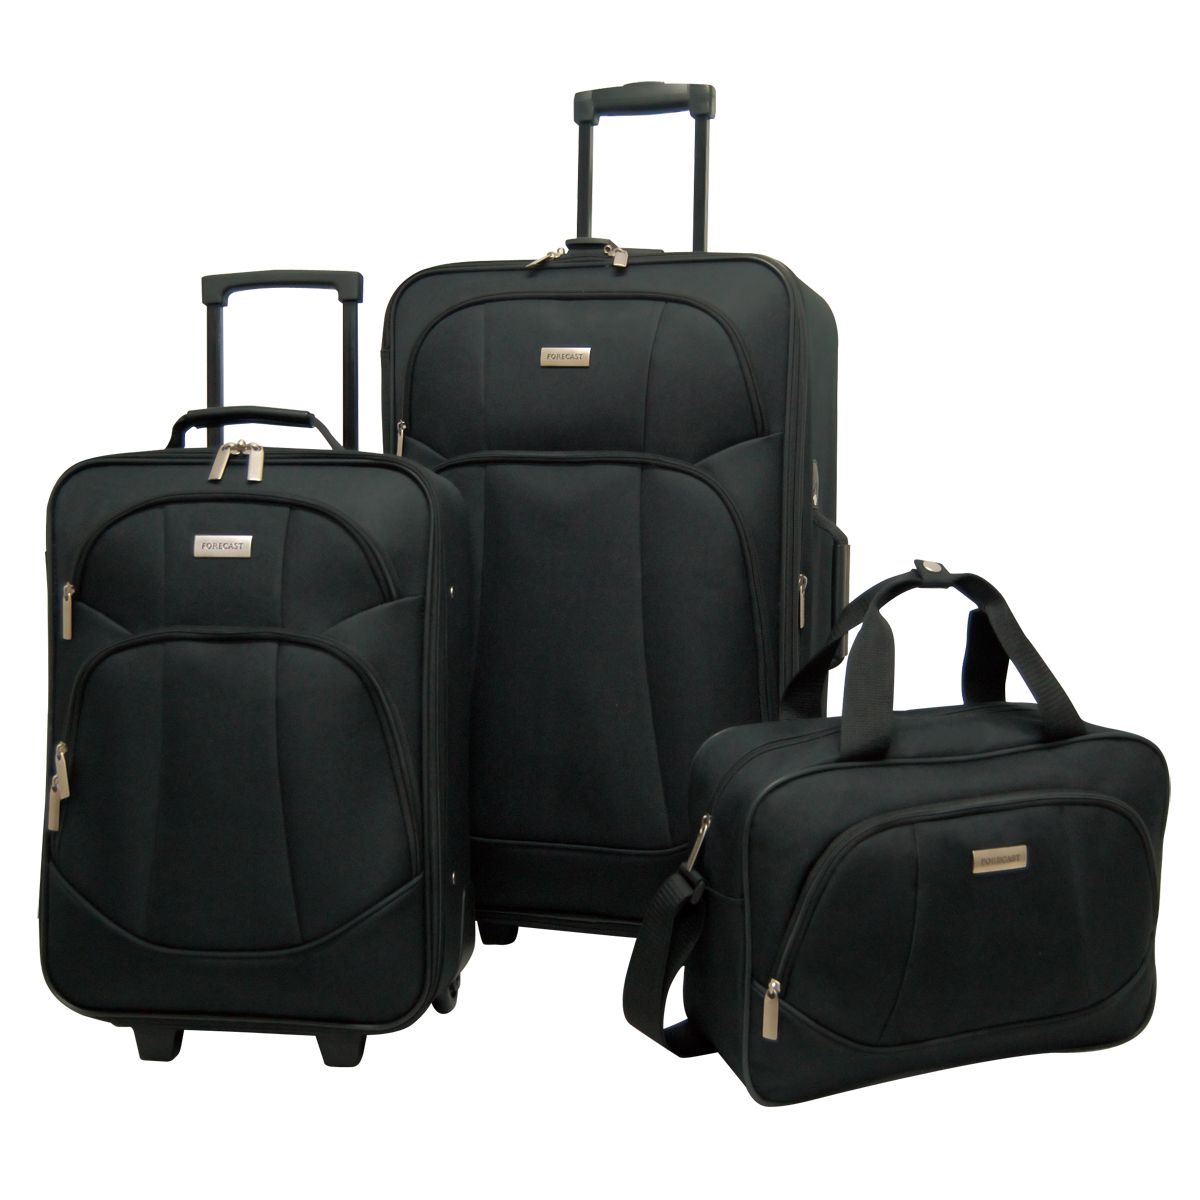 Travel Bag Kmart Forecast Fiji 3 Piece Luggage Set Travel Better With Sears